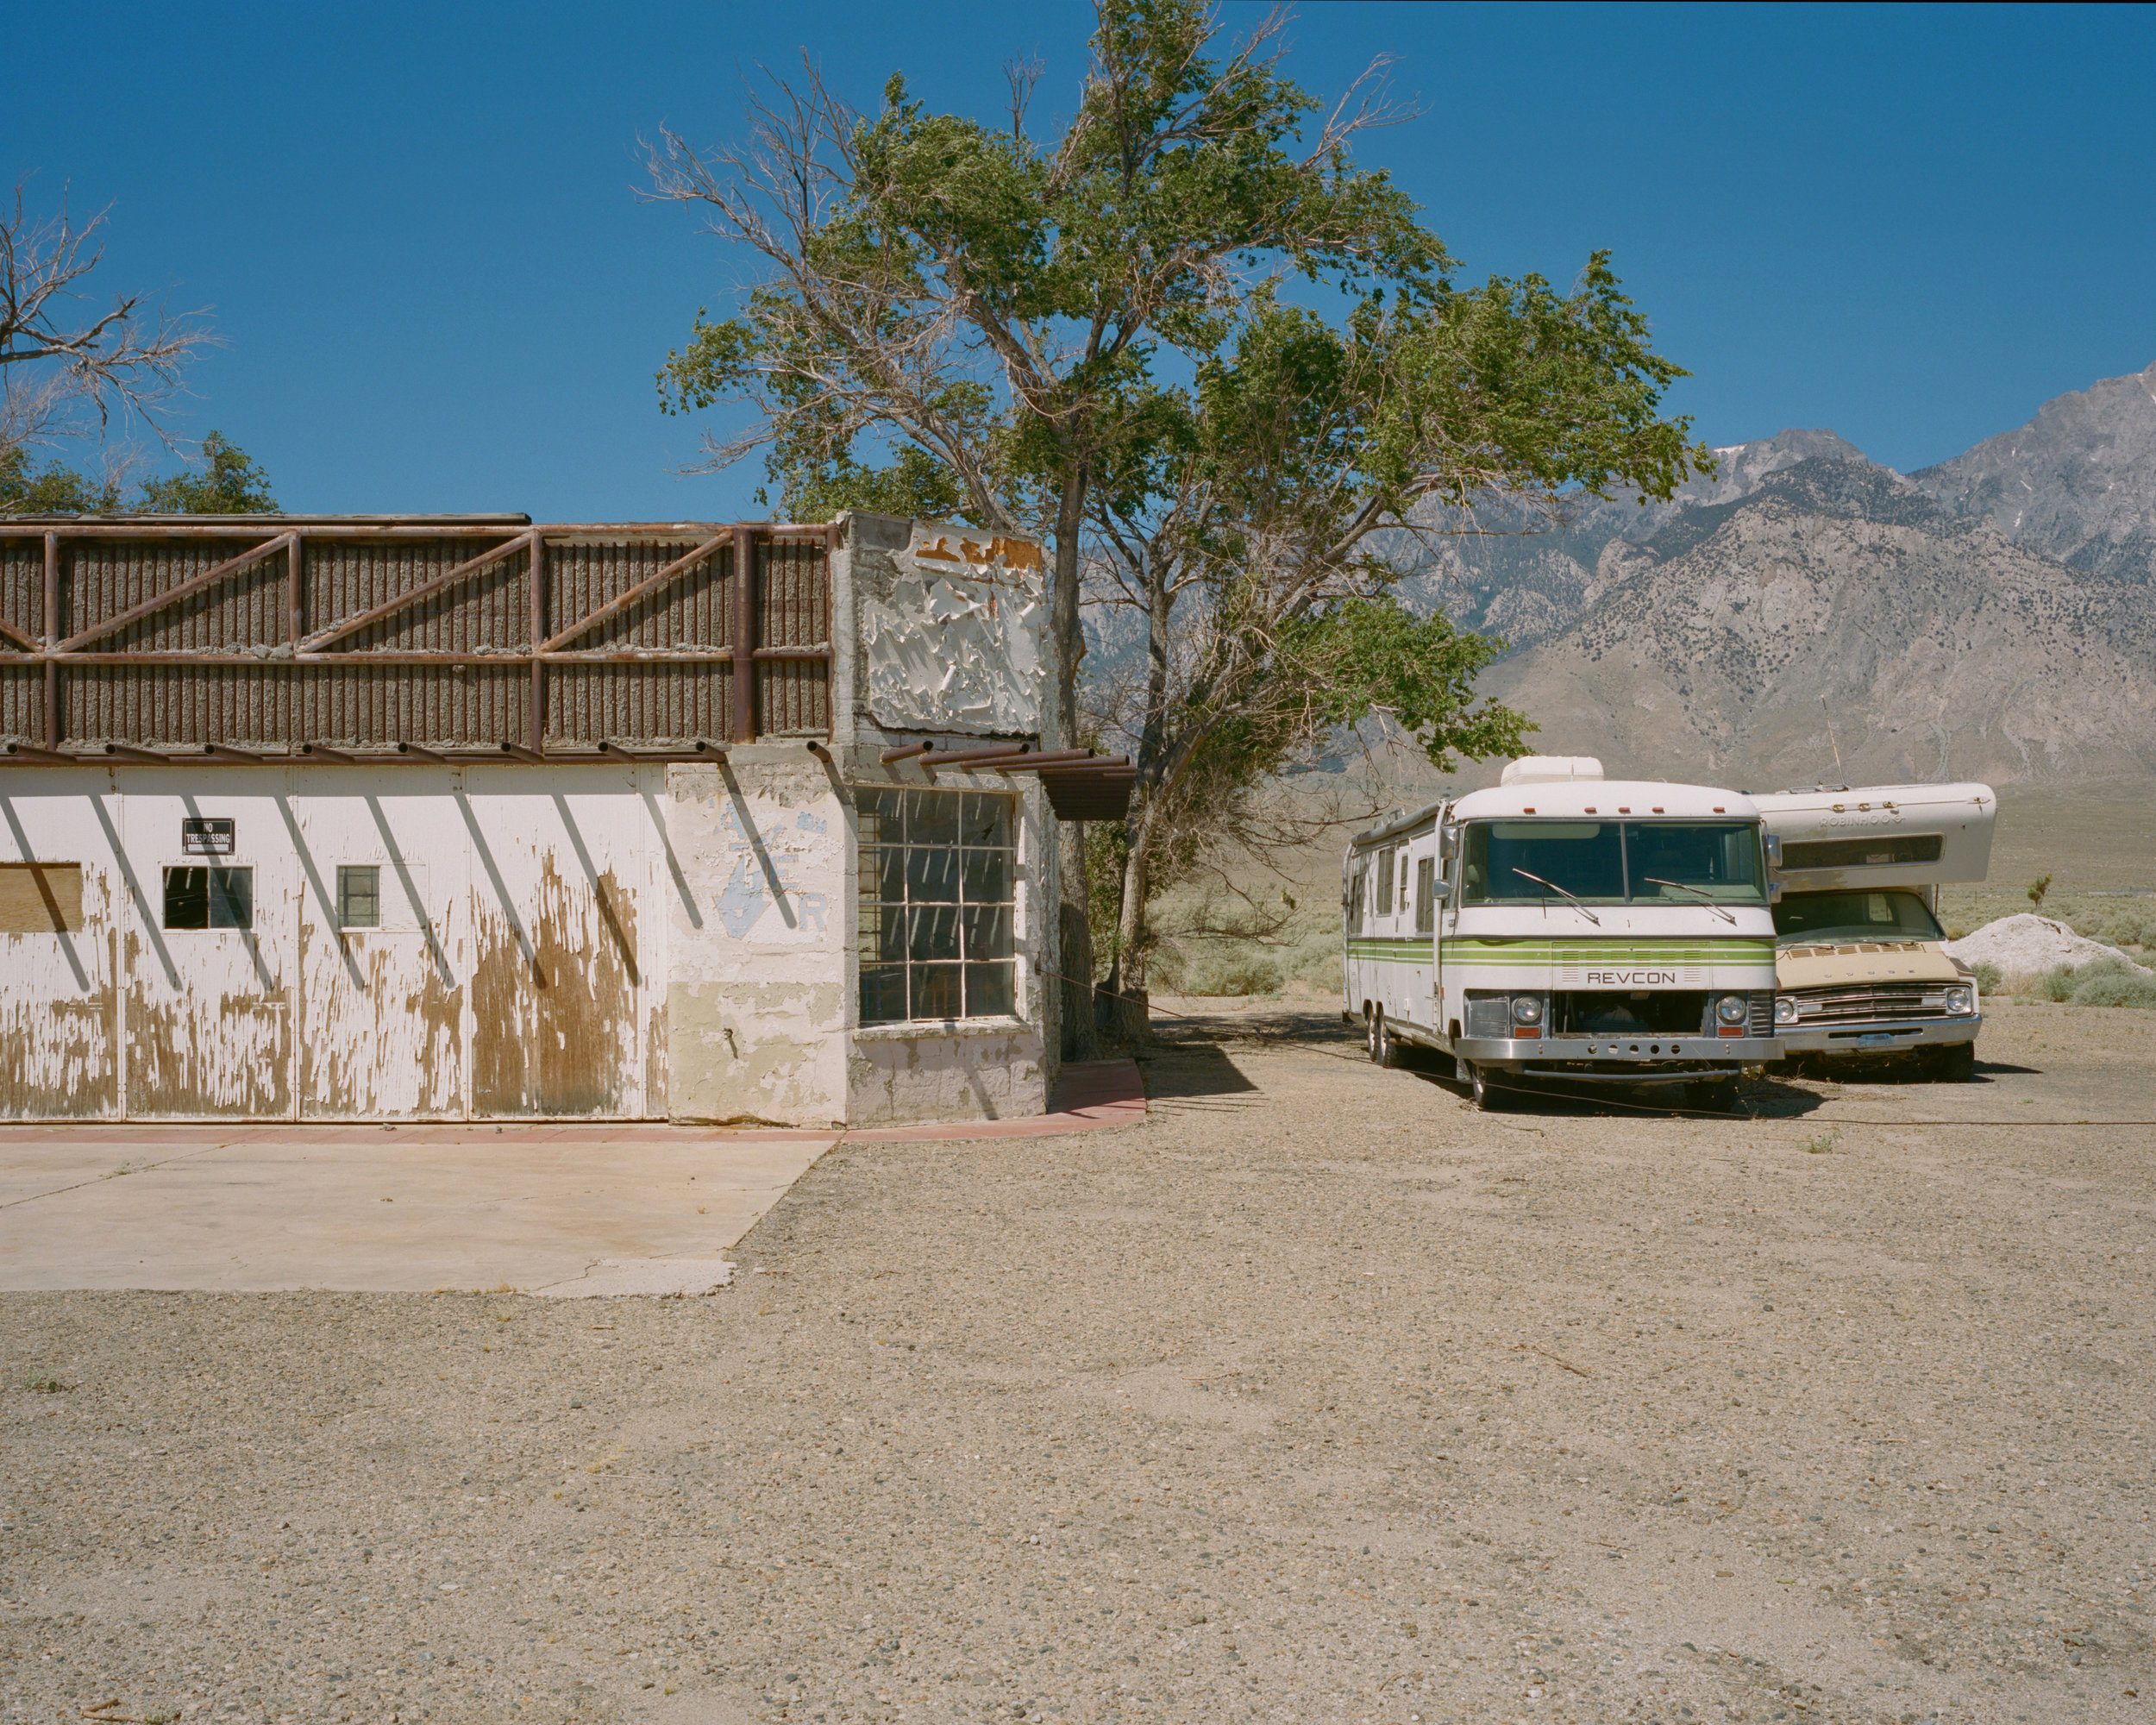 Old service station; Revcon RV still present, Highway 395, CA, 2019 - 120 Portra (6x7)